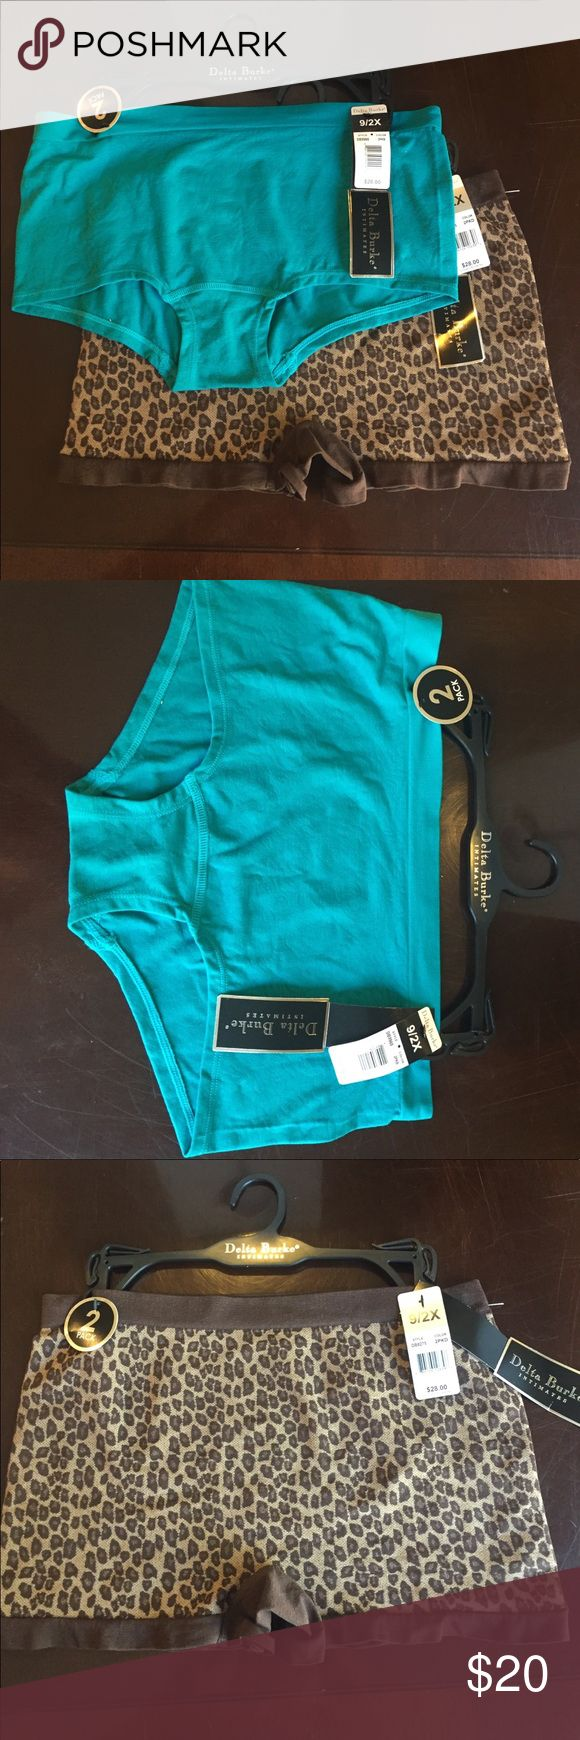 Delta Burke Intimates 2 Pairs of New Underwear Brand new with tags pair of Delta Burke Intimates. Size 9/2X. One pair of blue briefs with flower detail and one pair of leopard/cheetah boy shorts Delta Burke Intimates & Sleepwear Panties